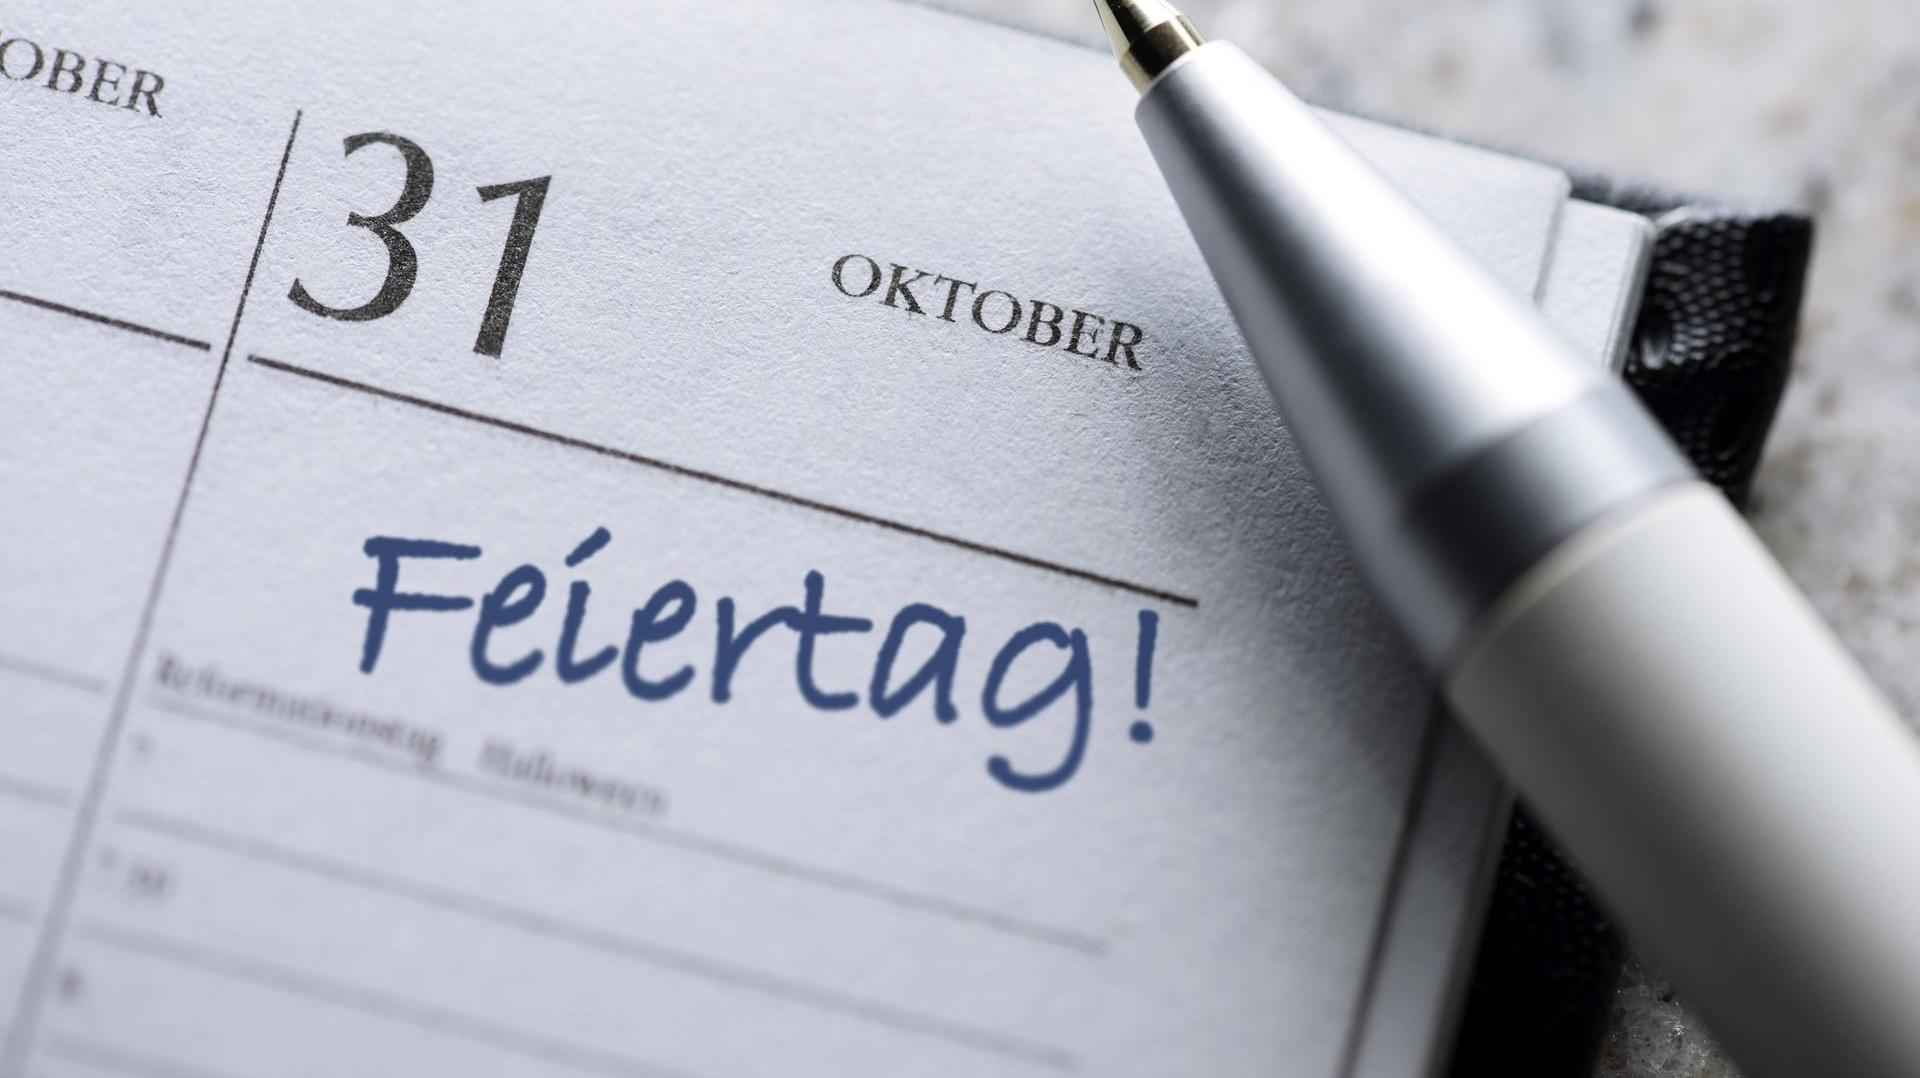 Wo Ist Reformationstag